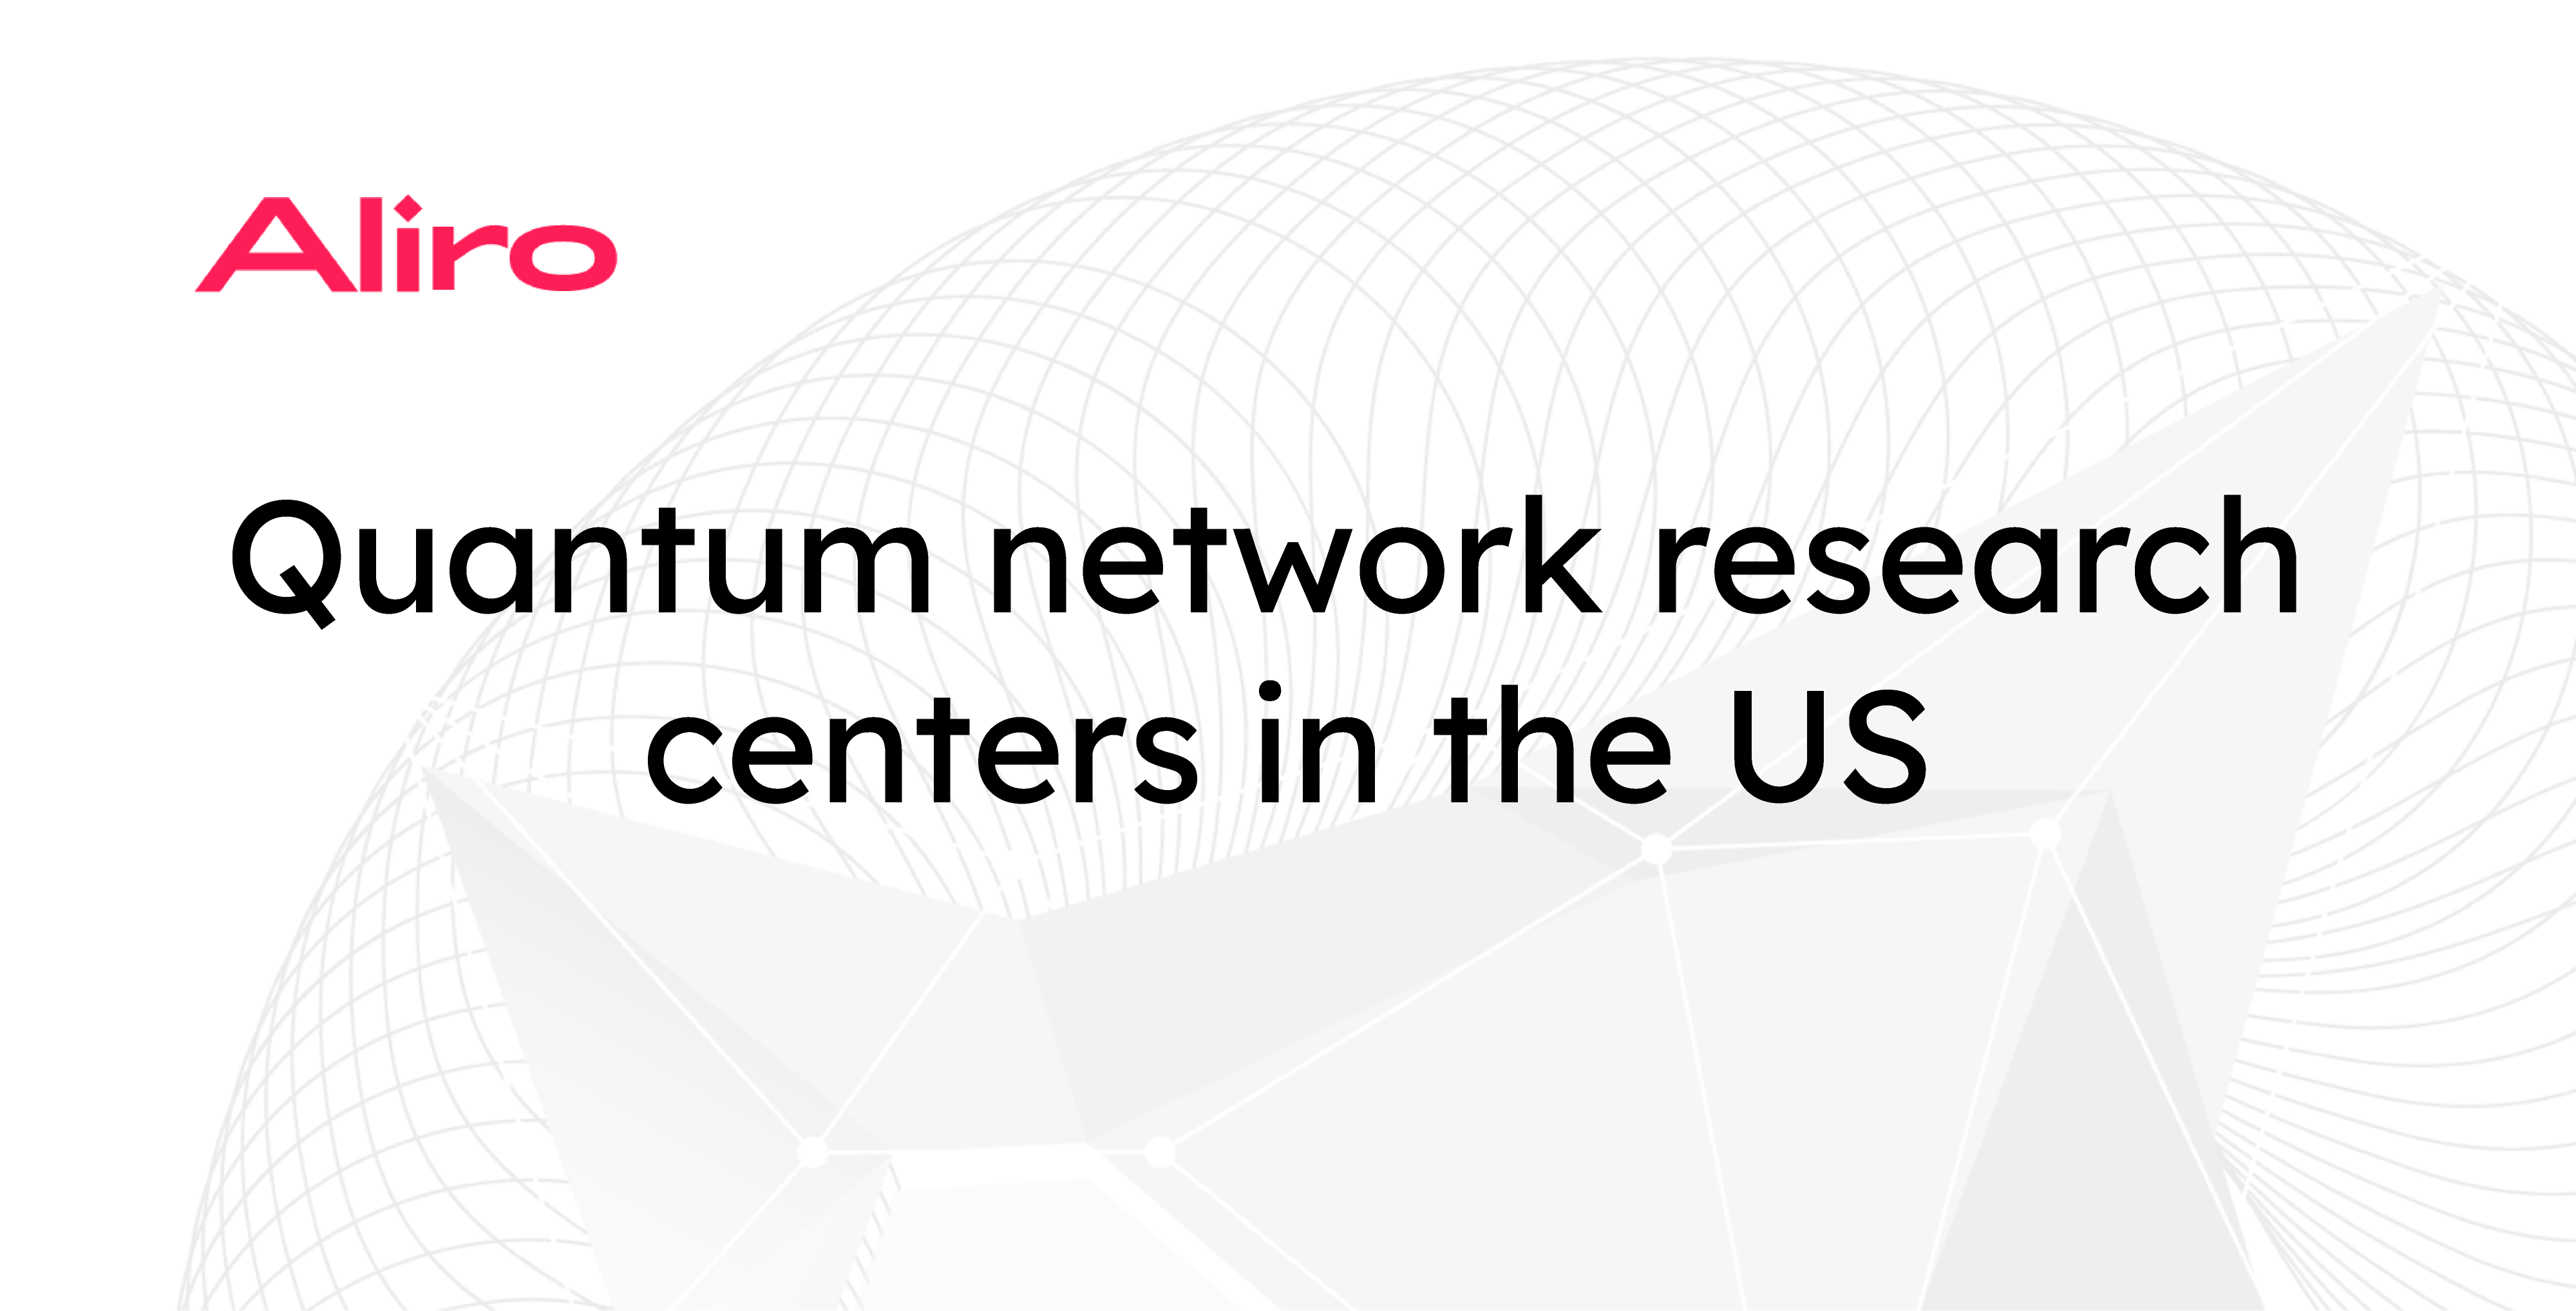 Quantum network research centers in the US